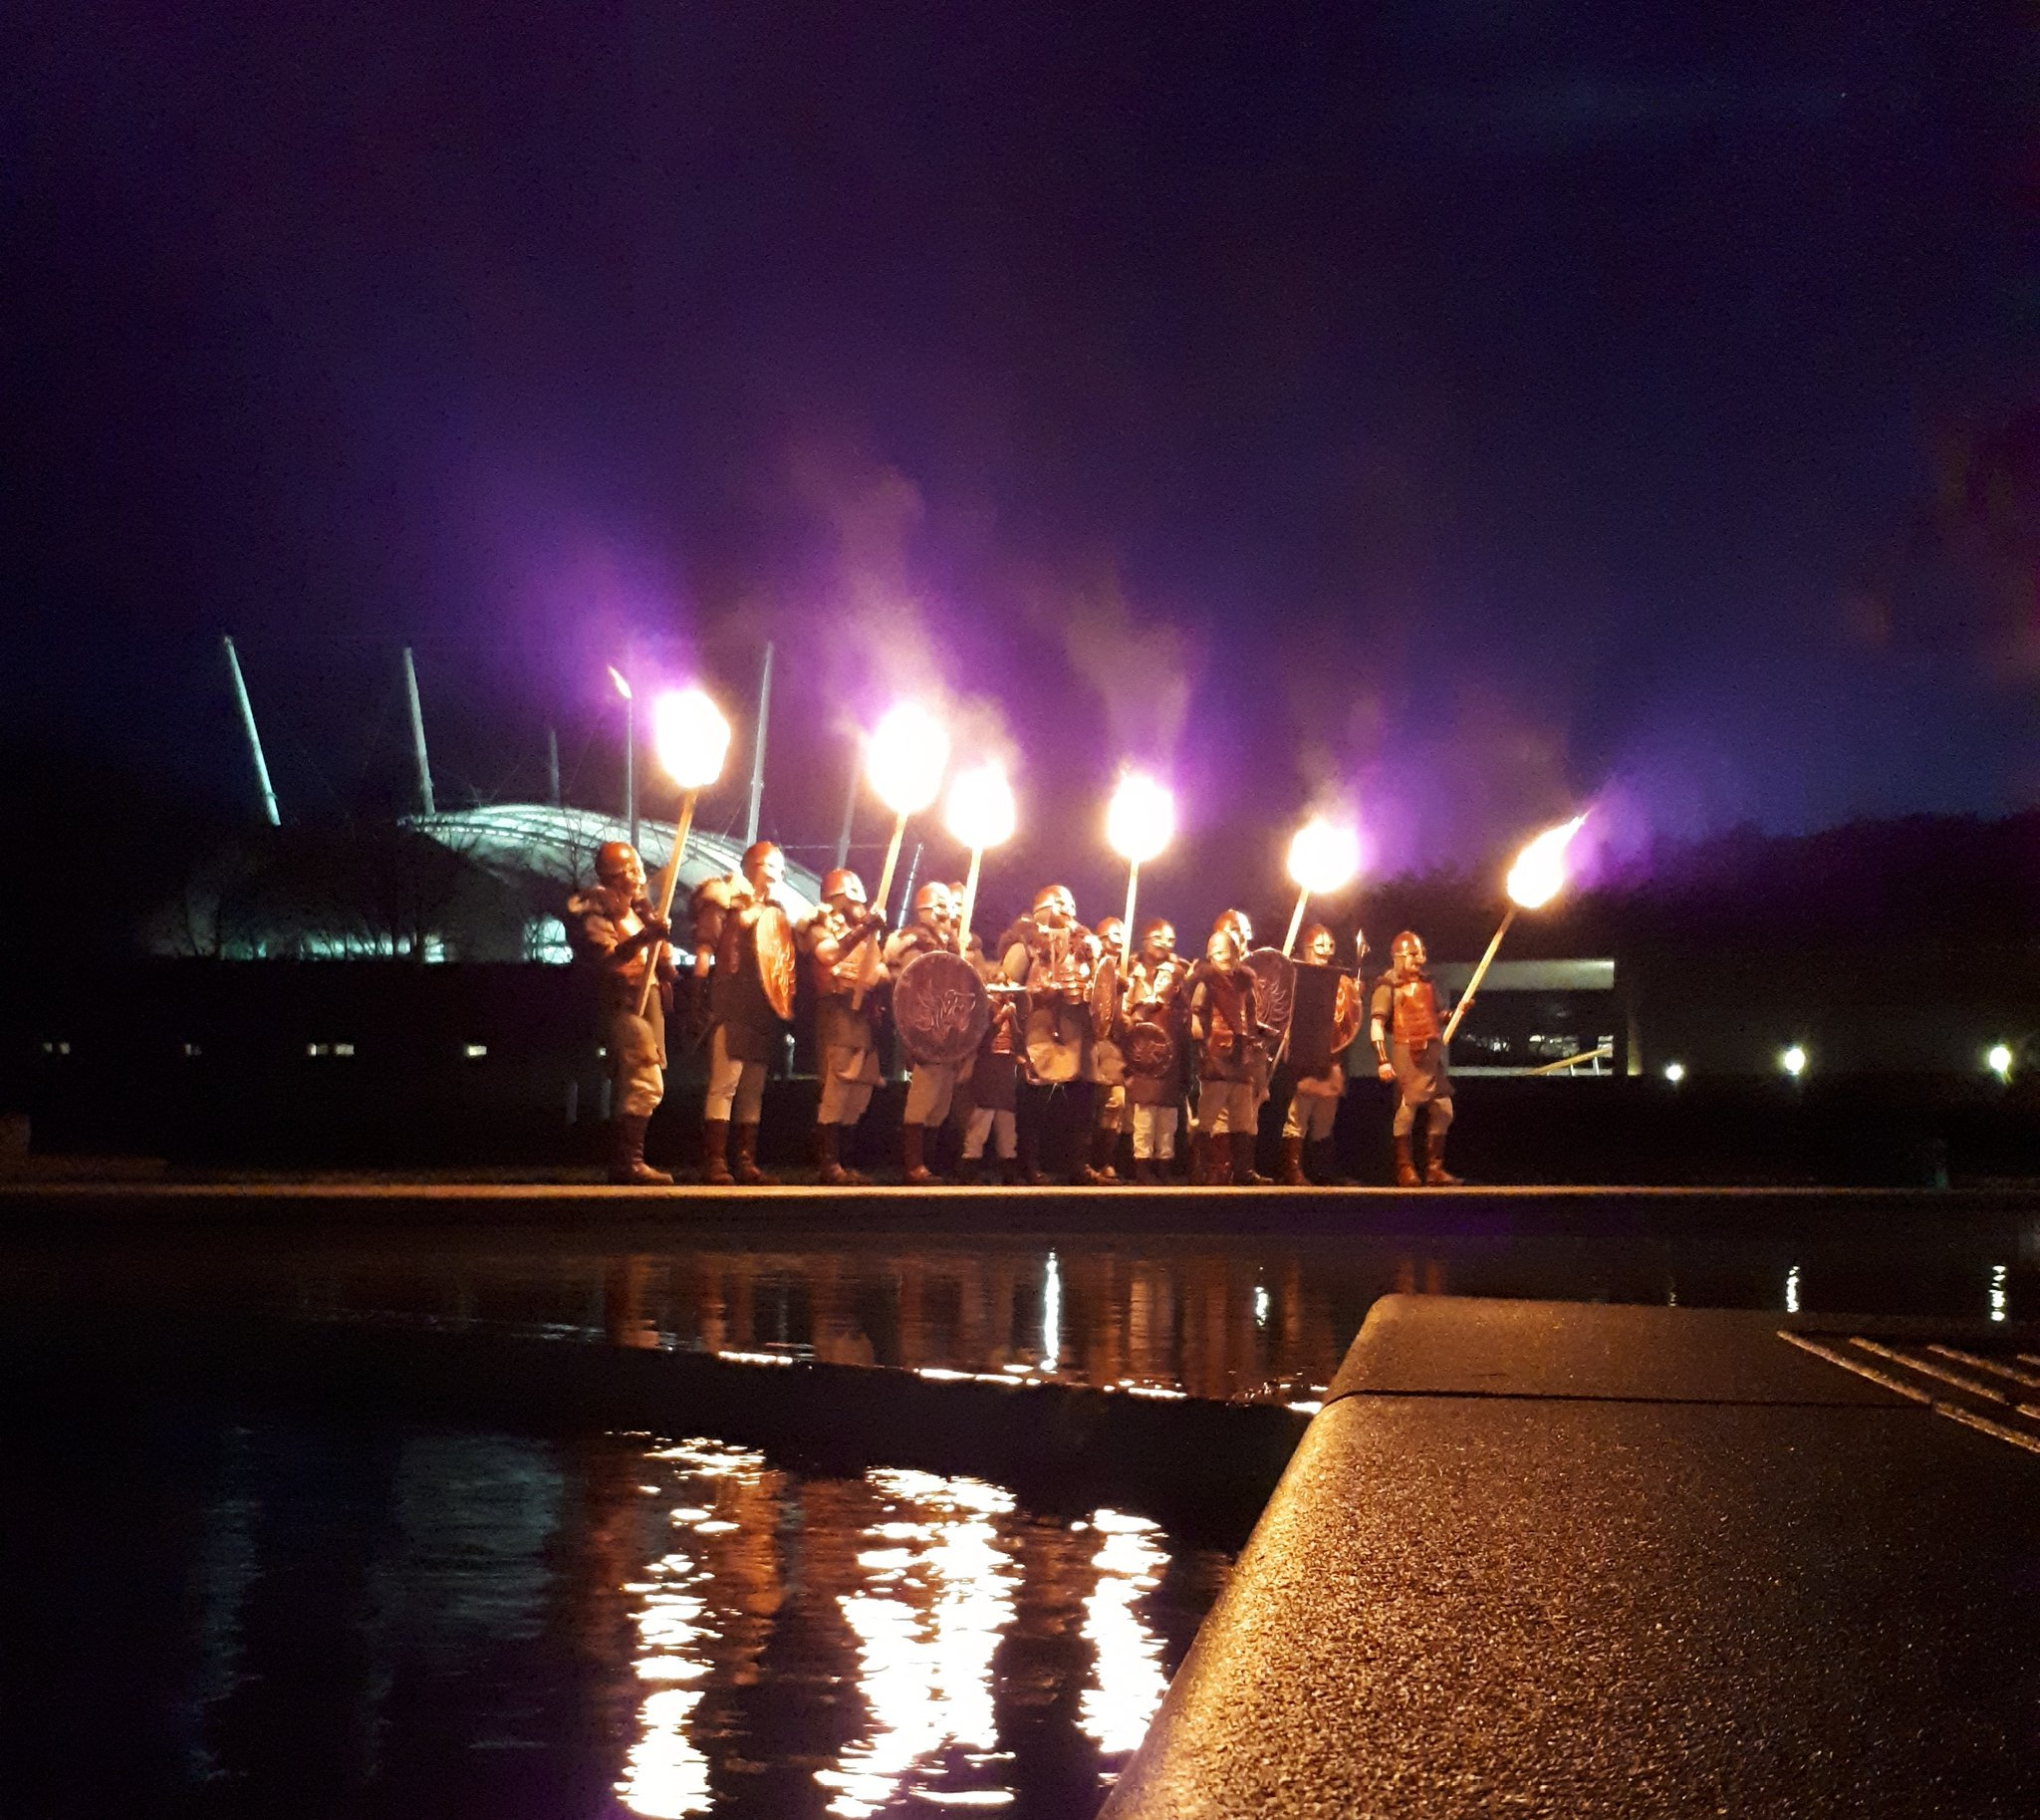 We're getting ready for @edhogmanay's Torchlight Procession! #edhogmanay #YOYP2018 ���� https://t.co/HdN1od73yk